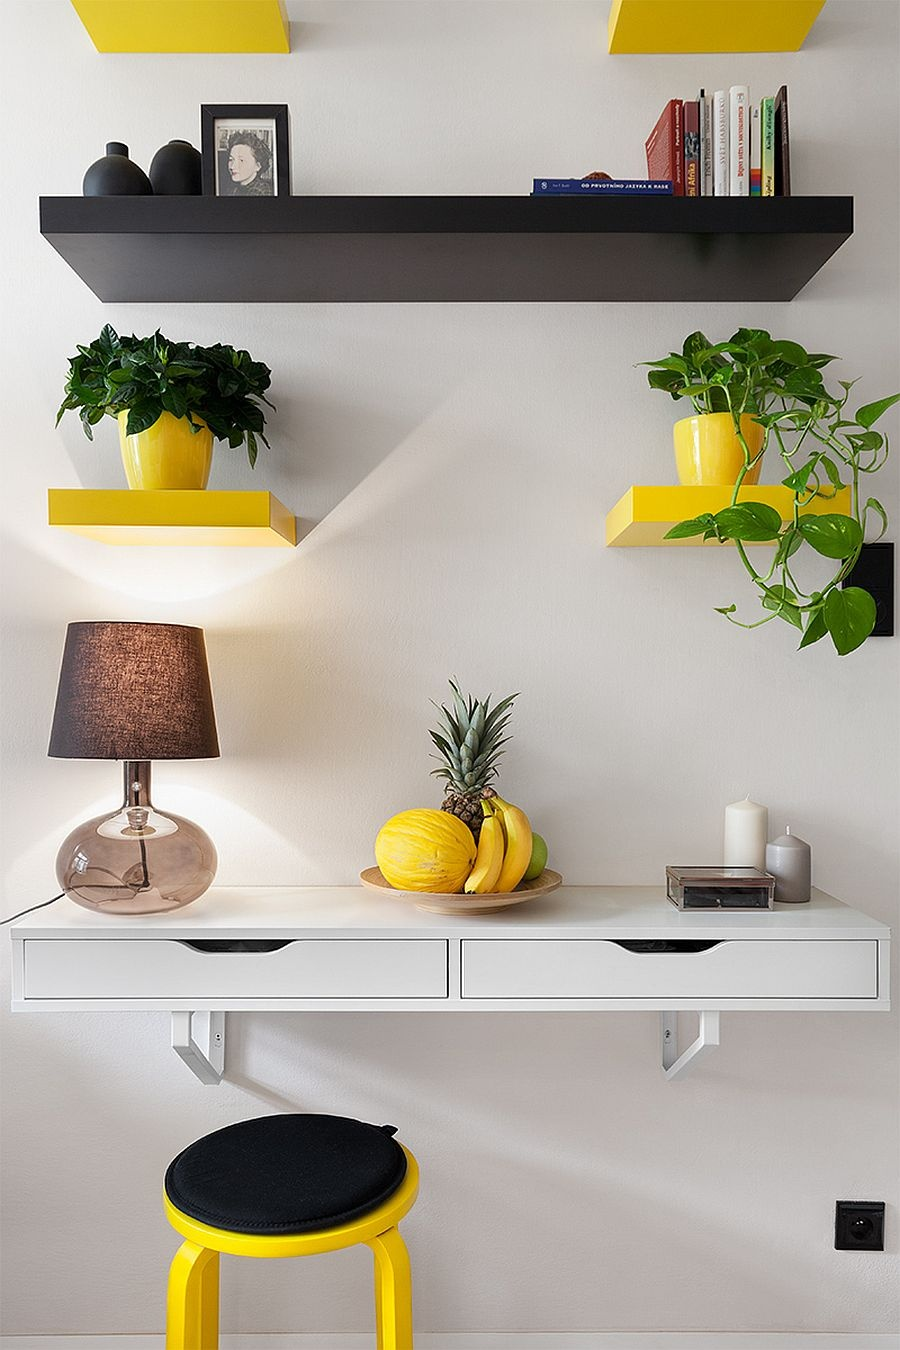 pops-of-yellow-stand-out-more-vividly-thanks-to-the-neutral-backdrop_03